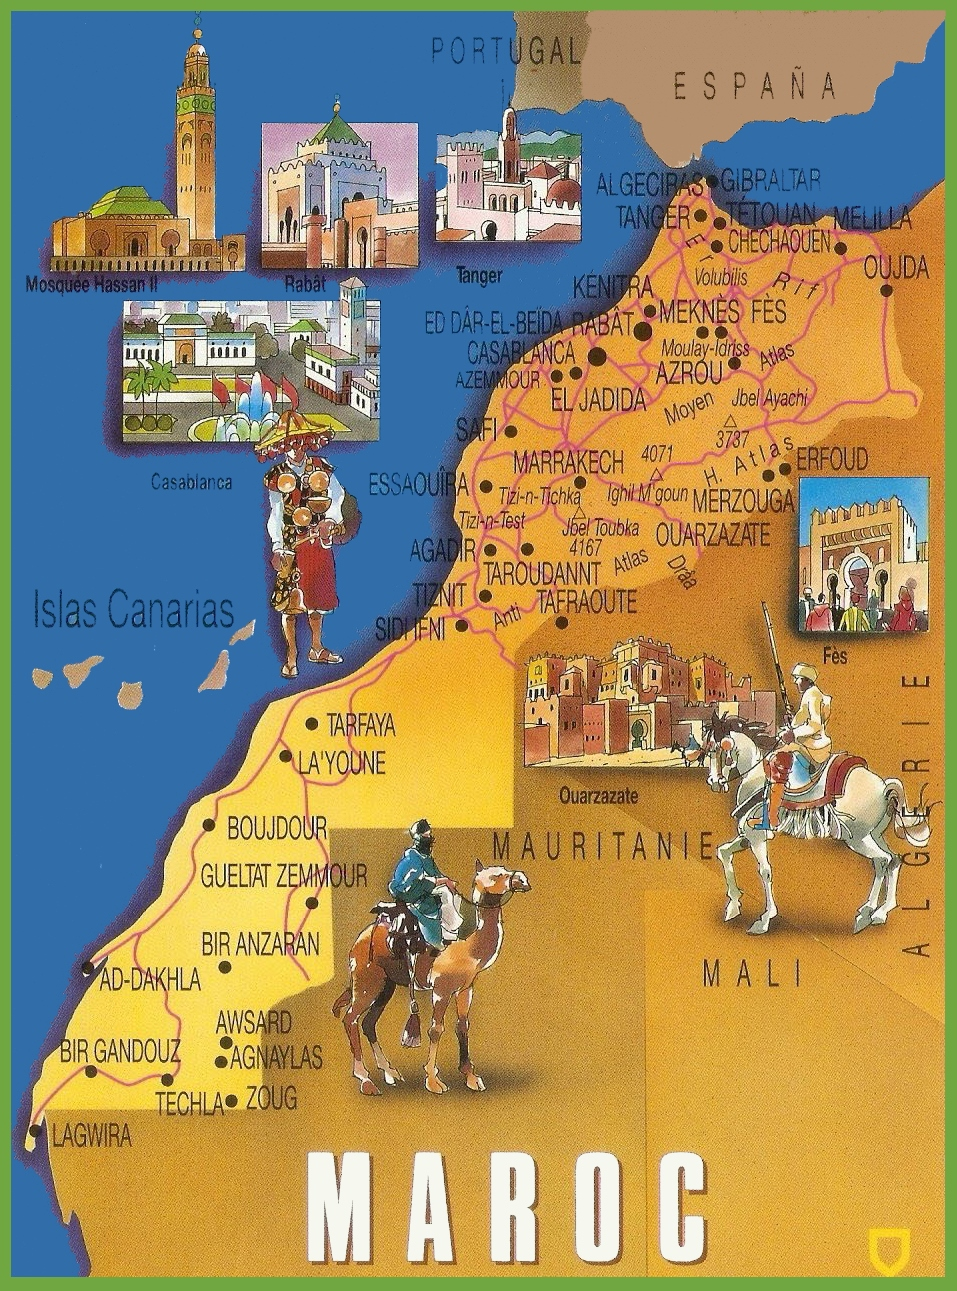 {Morocco tourist map – Morocco Tourist Map